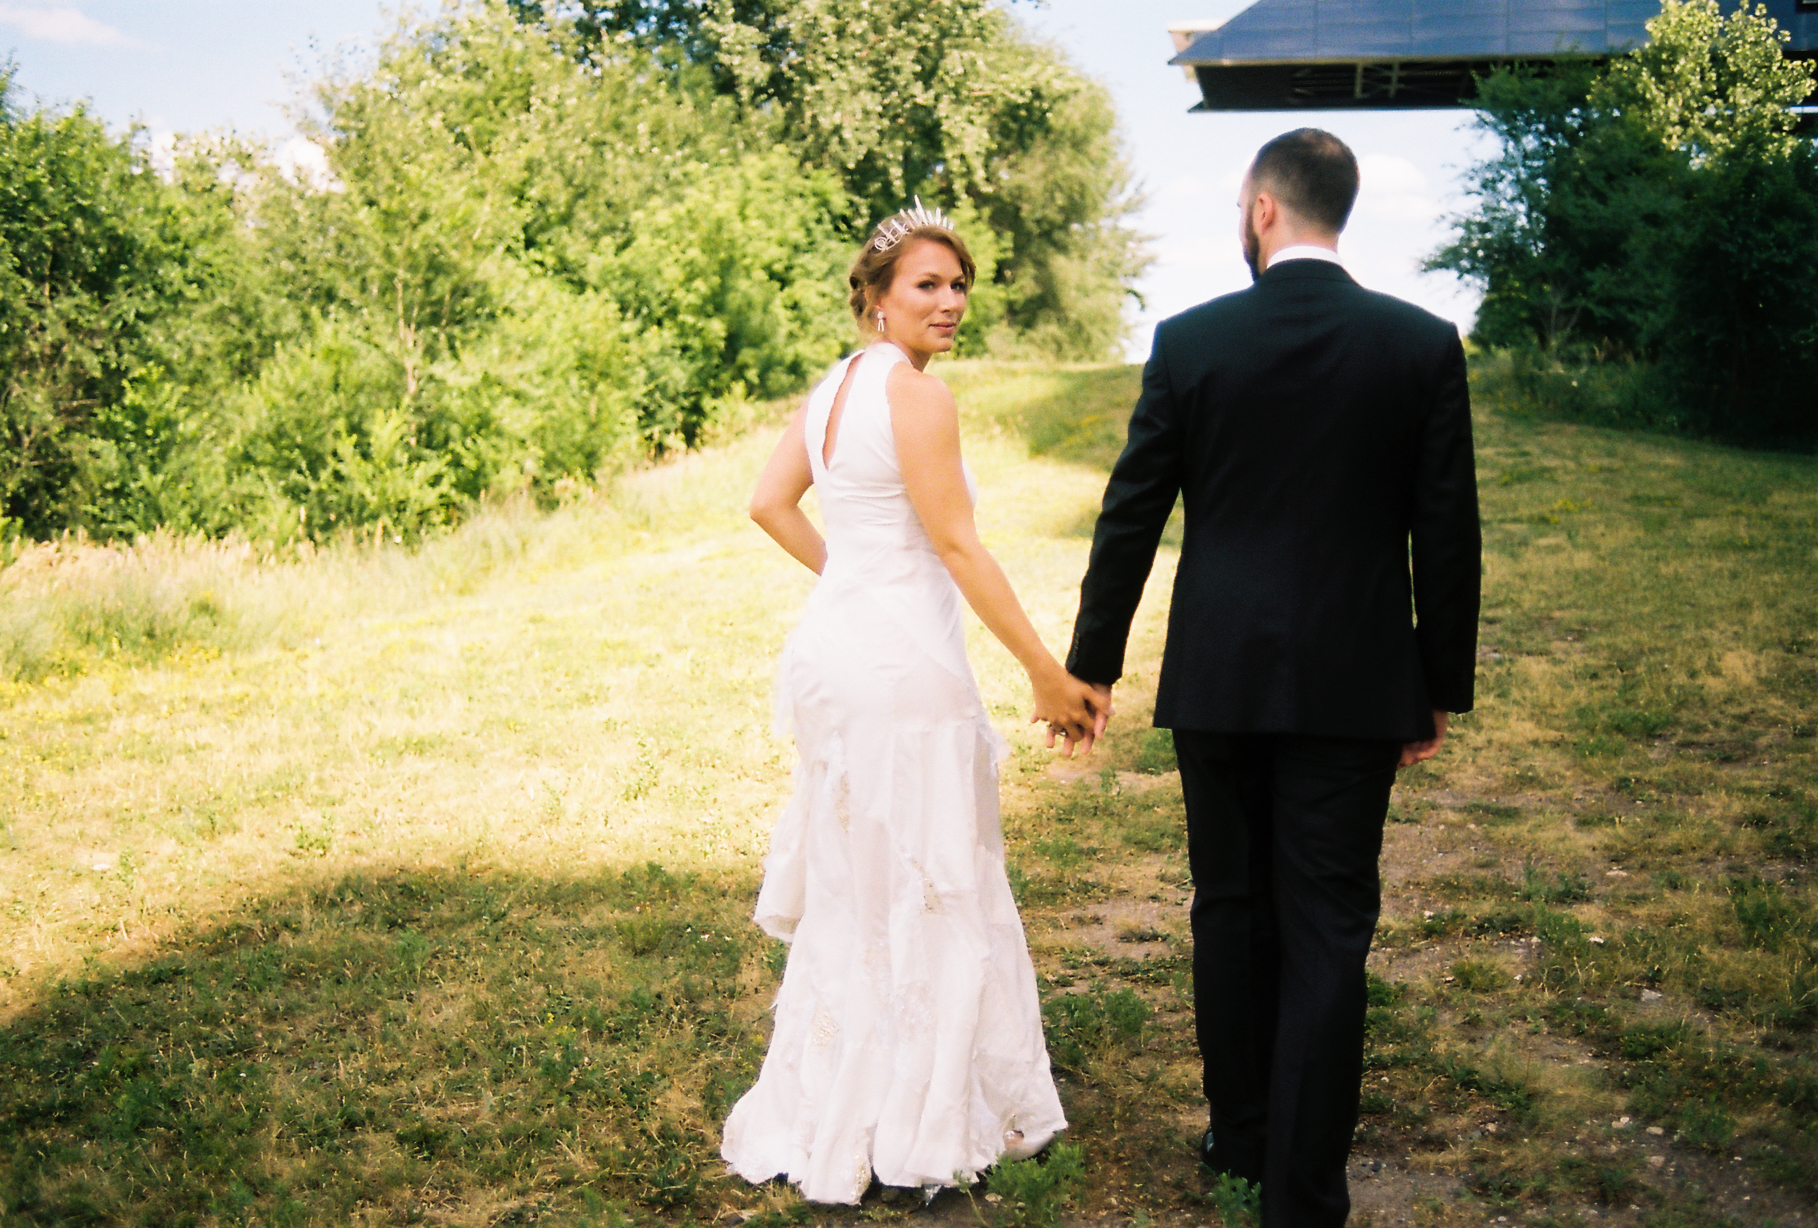 Enchanted Twin Cities Mill City Museum wedding in the summer by NYLONSADDLE Photography.